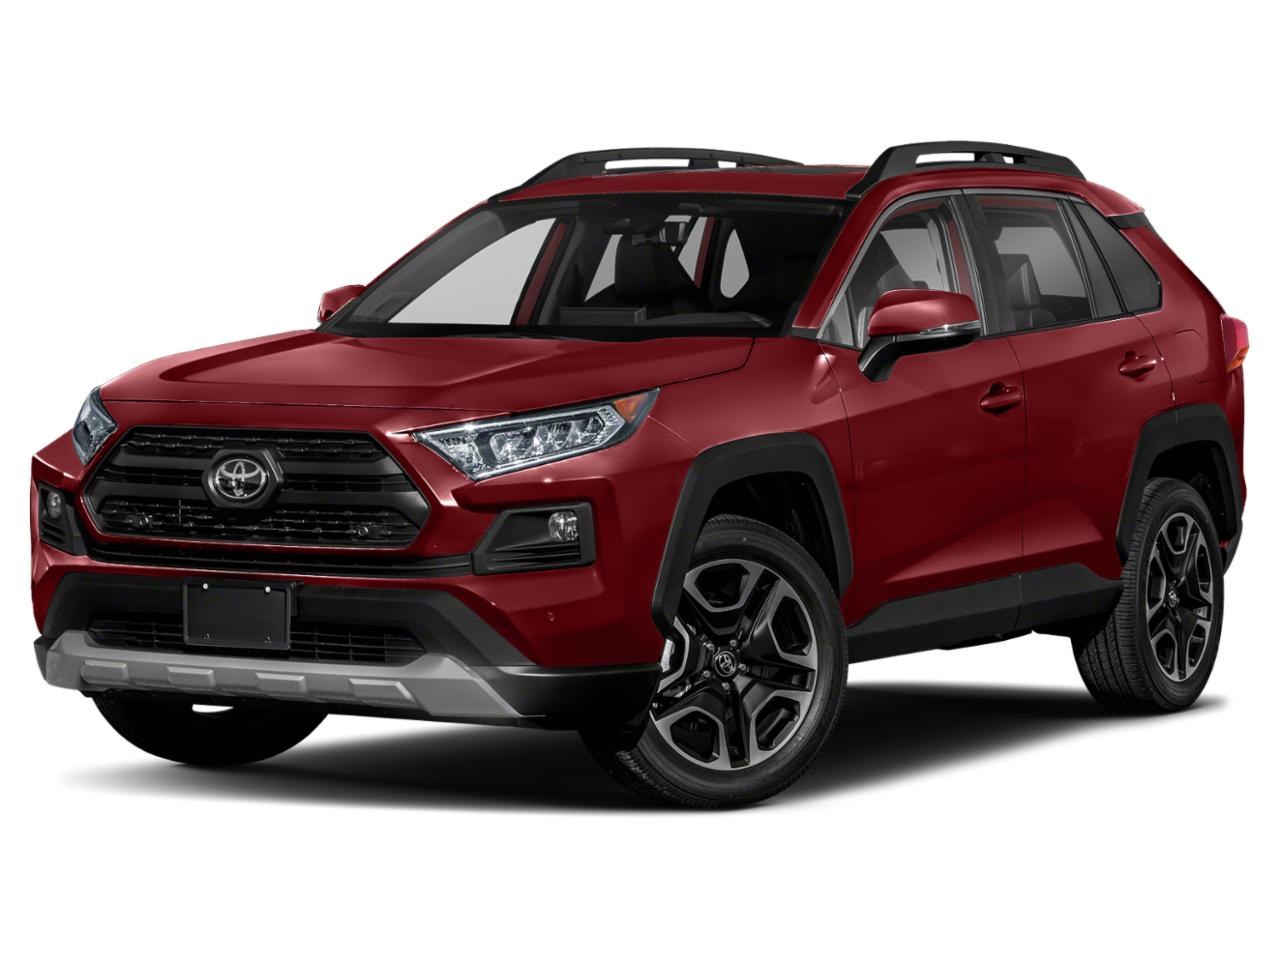 2019 Toyota RAV4 Vehicle Photo in Muncy, PA 17756